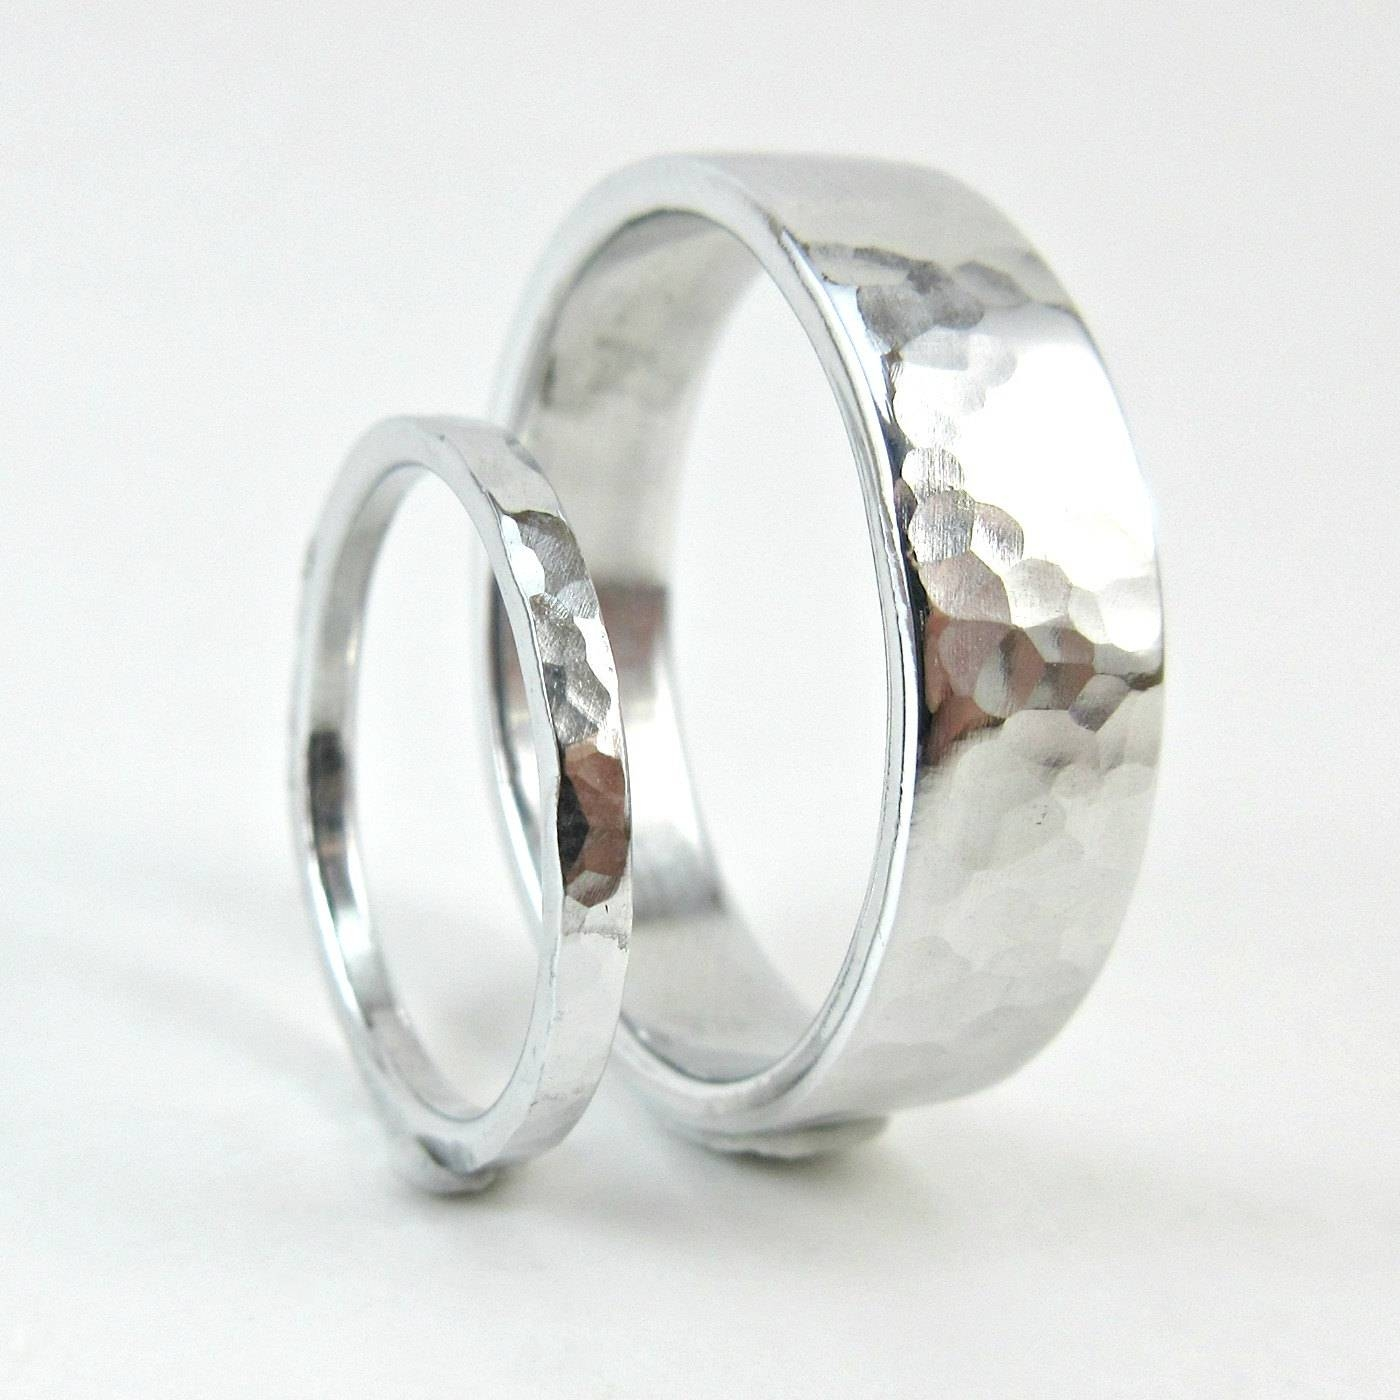 Hammered Aluminum Ring Set 10 Year Anniversary Bands His And Within Most Recent Couples Anniversary Rings (View 7 of 25)